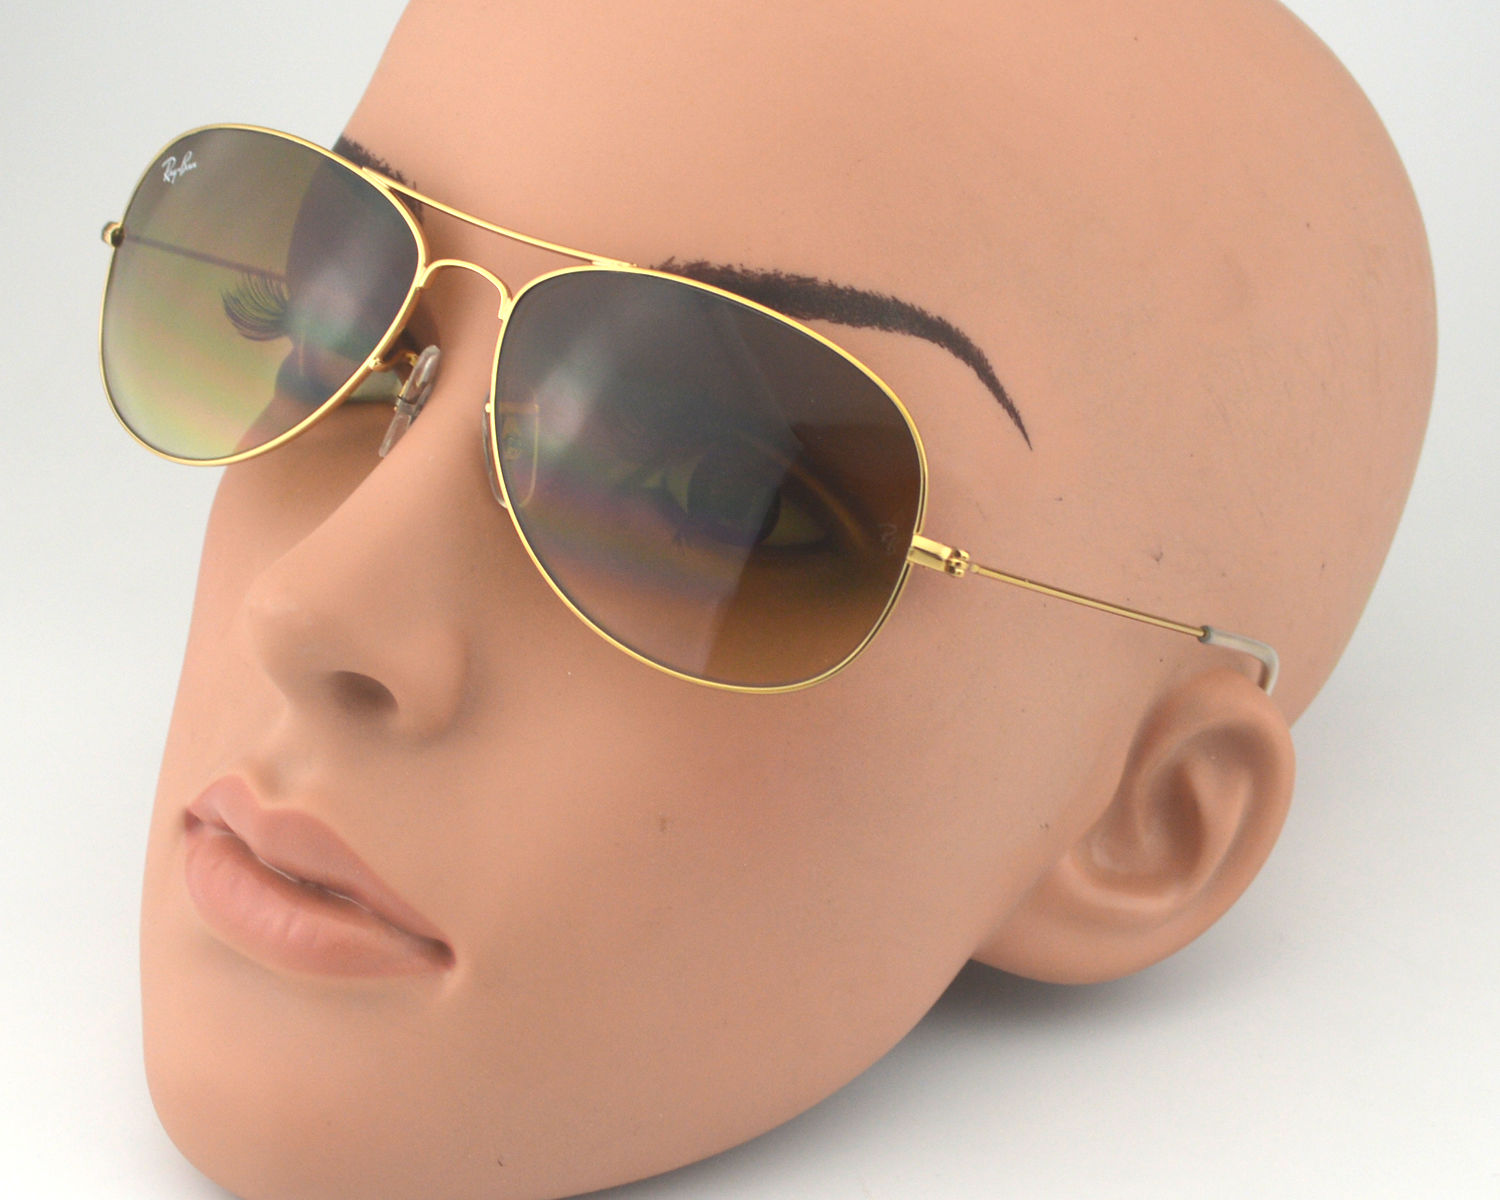 0ded94923db83 Ray Ban RB3362 Cockpit 001 51 Gold Frame  Light brown Gradient Glass Lens  Male Sunglasses 59mm